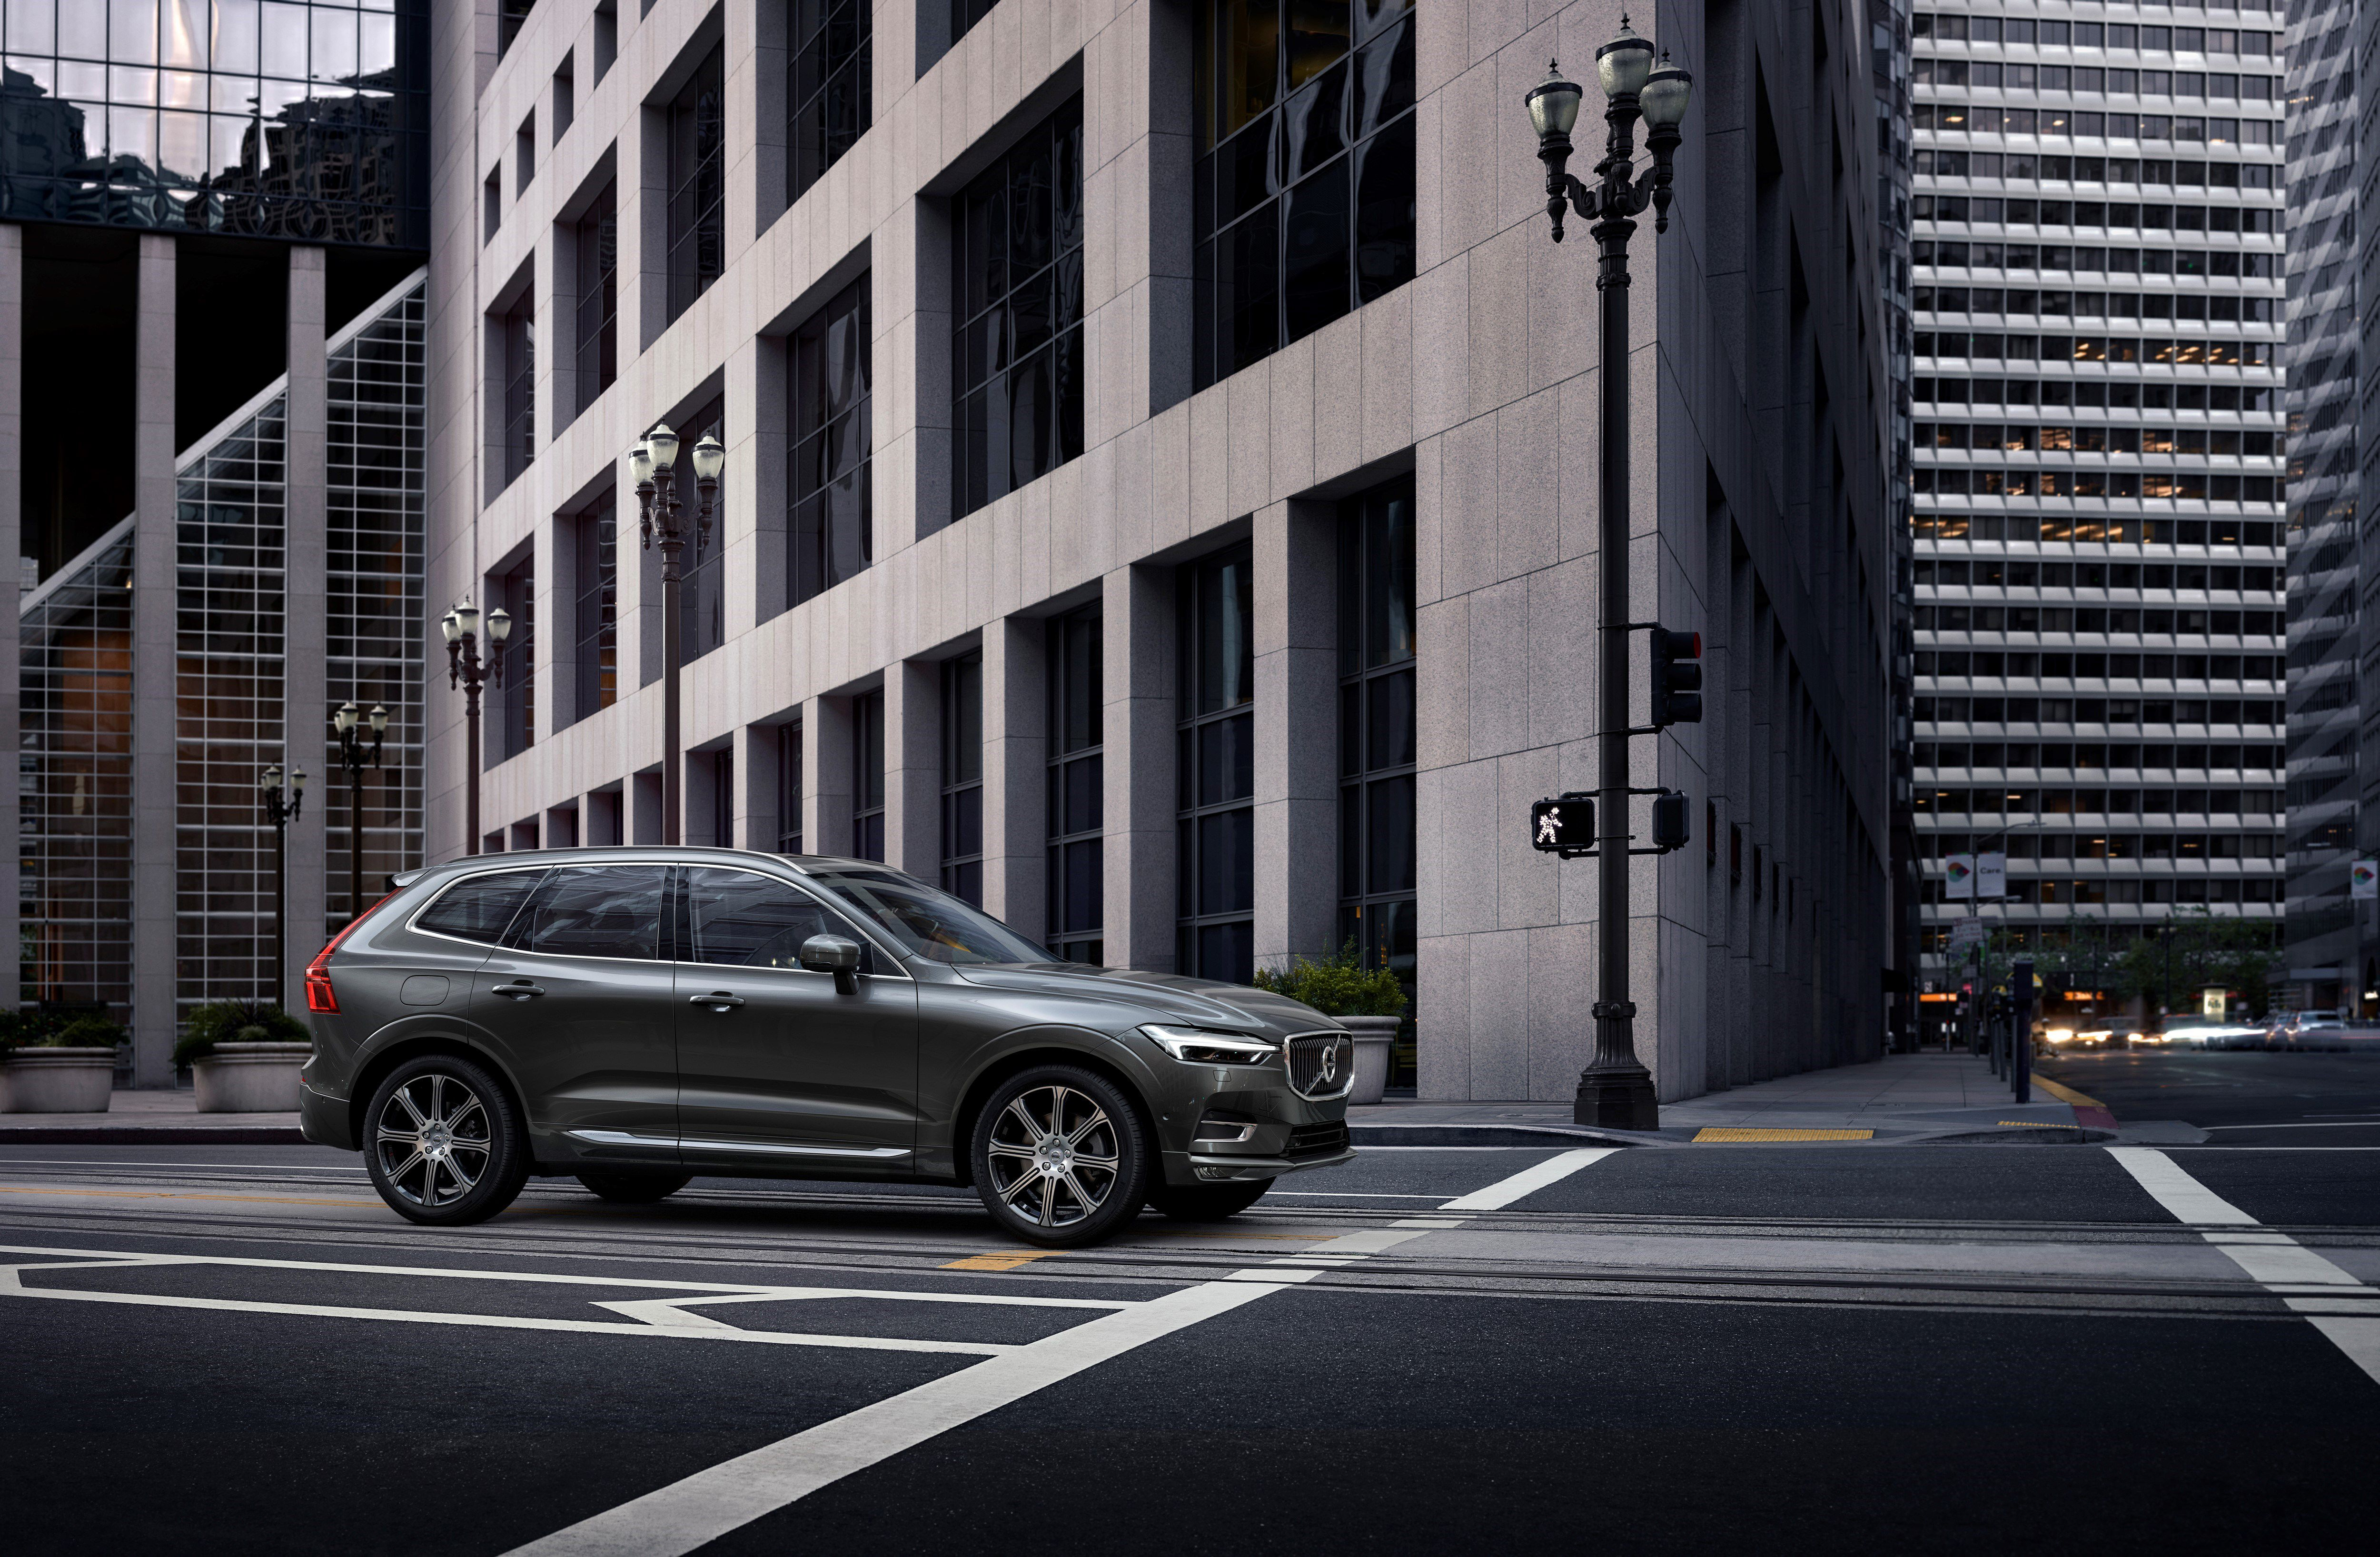 Volvo Xc60 The New Volvo Xc60 One Of The Safest Cars Ever Made Is Fully Loaded With New Technology Steer Assist Has Been Add Volvo Xc60 Volvo City Safety